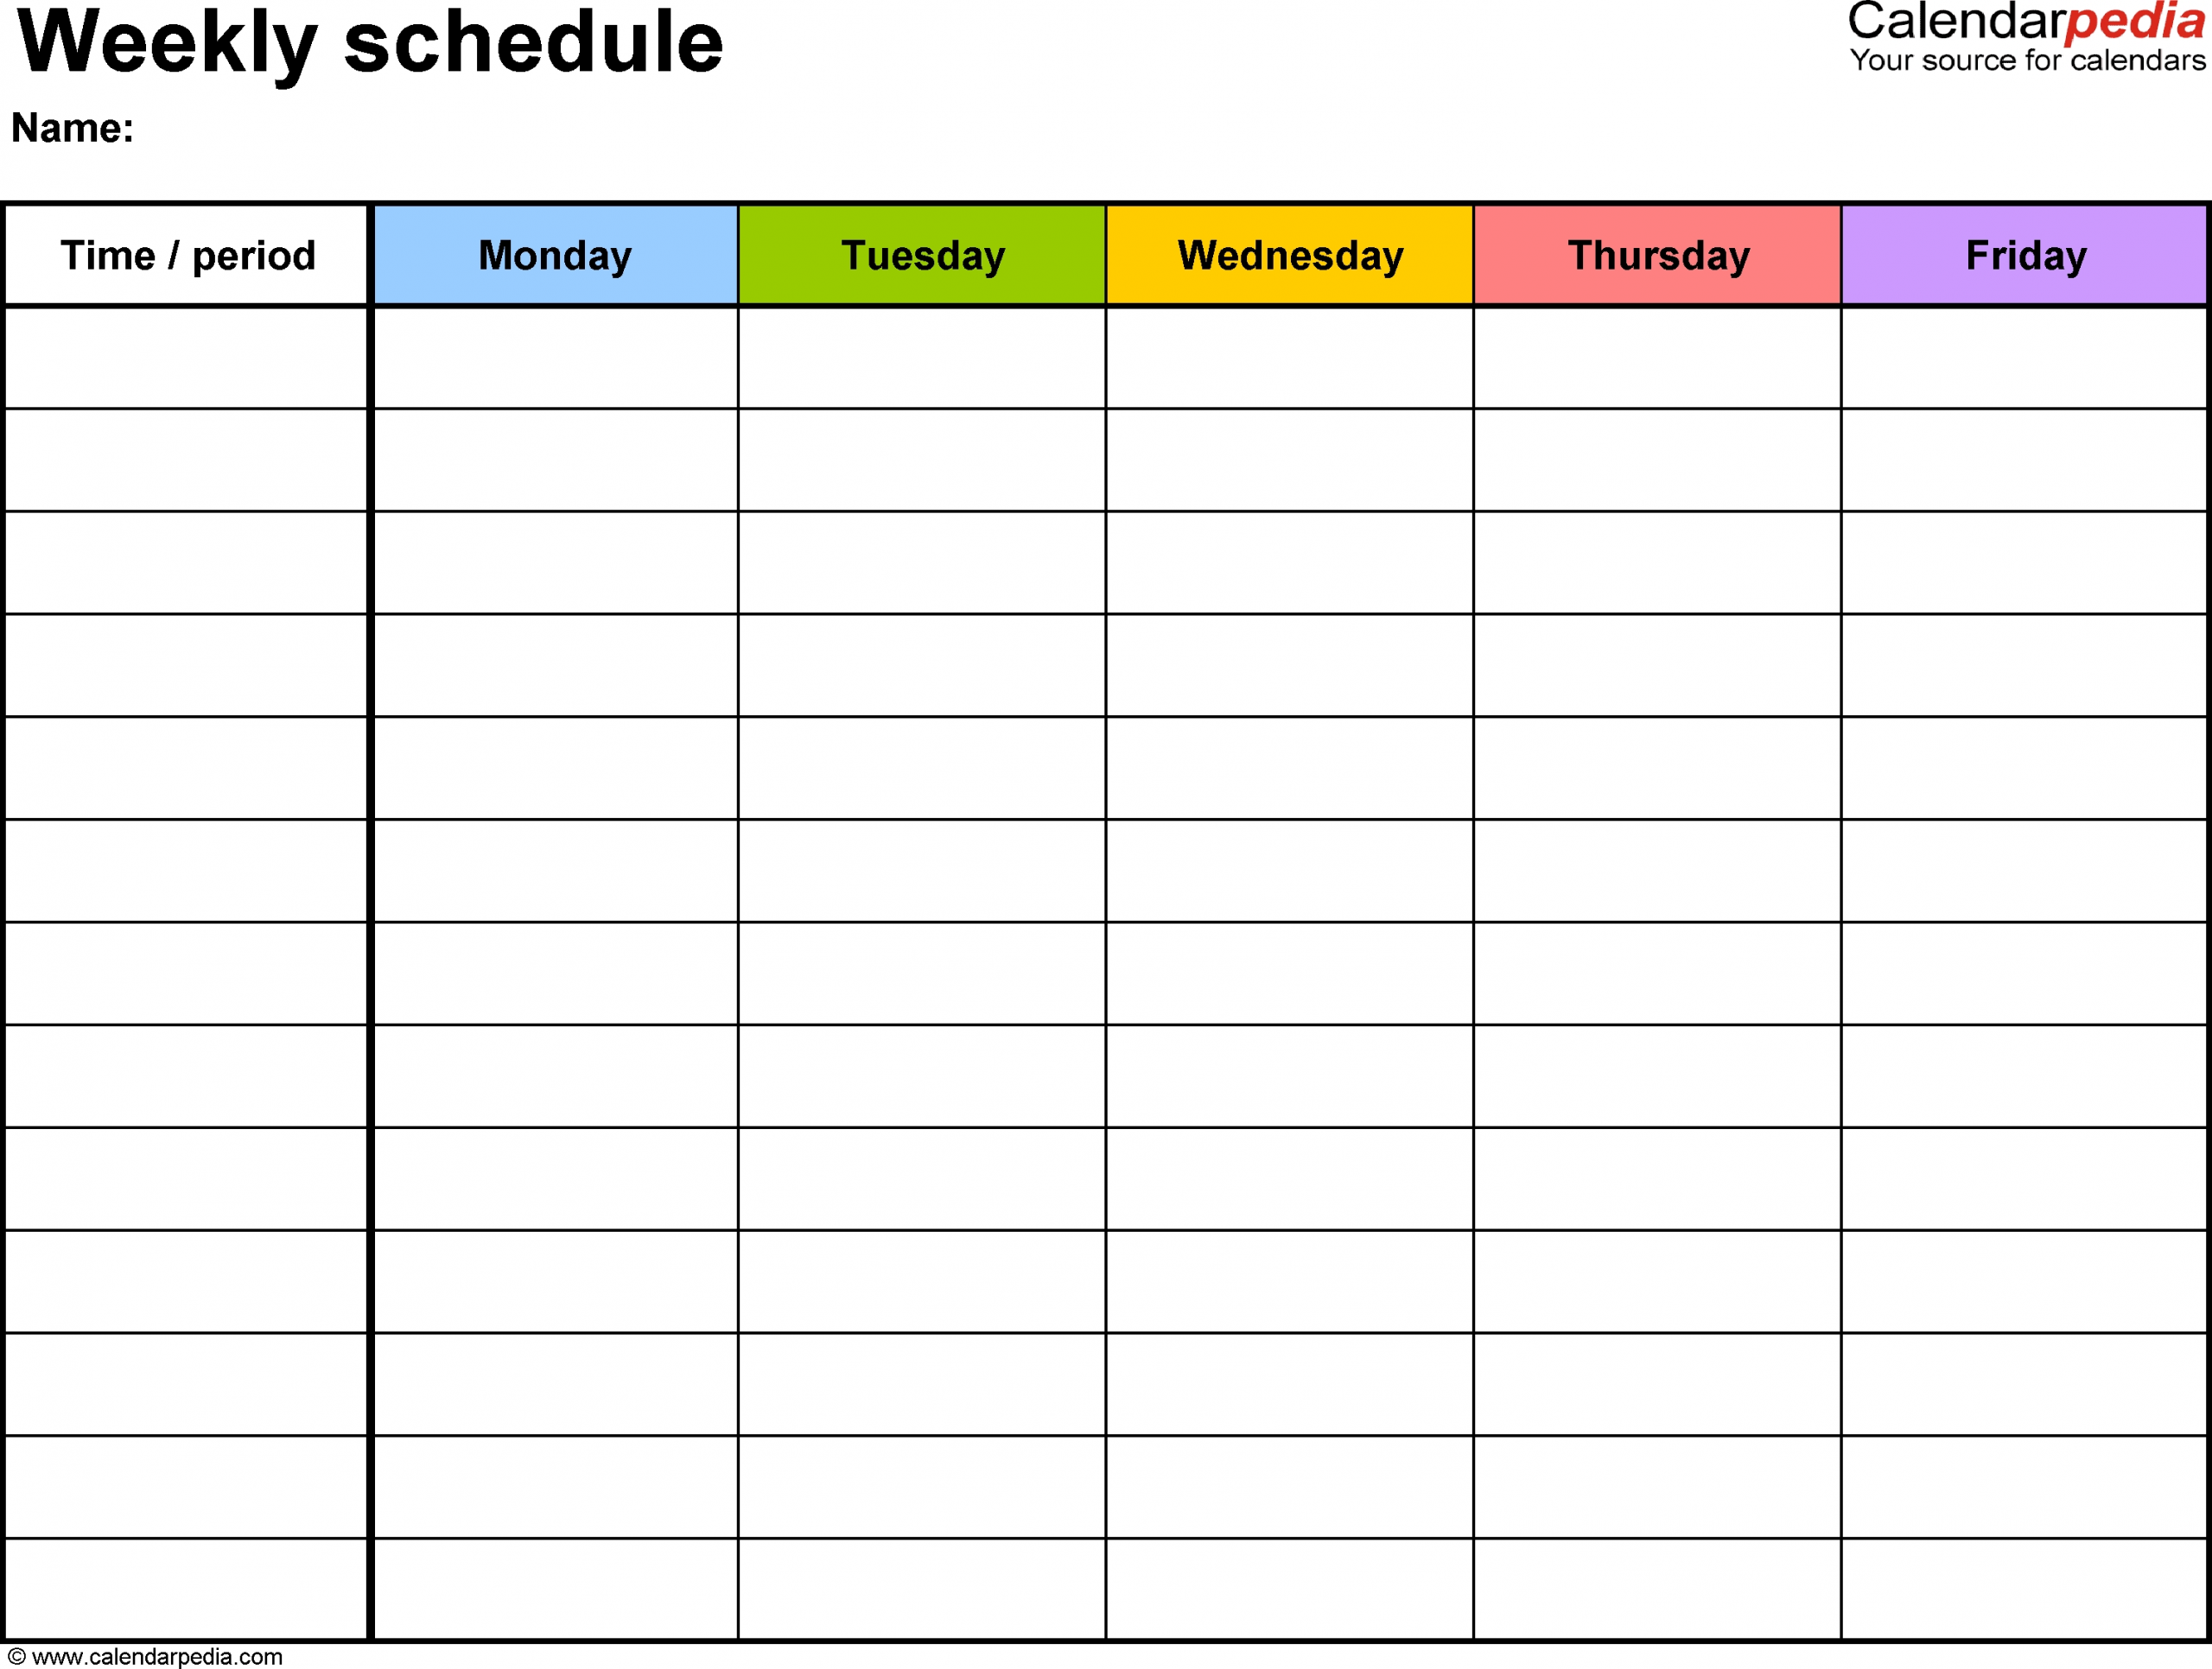 Free Weekly Schedule Templates For Word - 18 Templates pertaining to Template For Monday Through Friday School Schedule